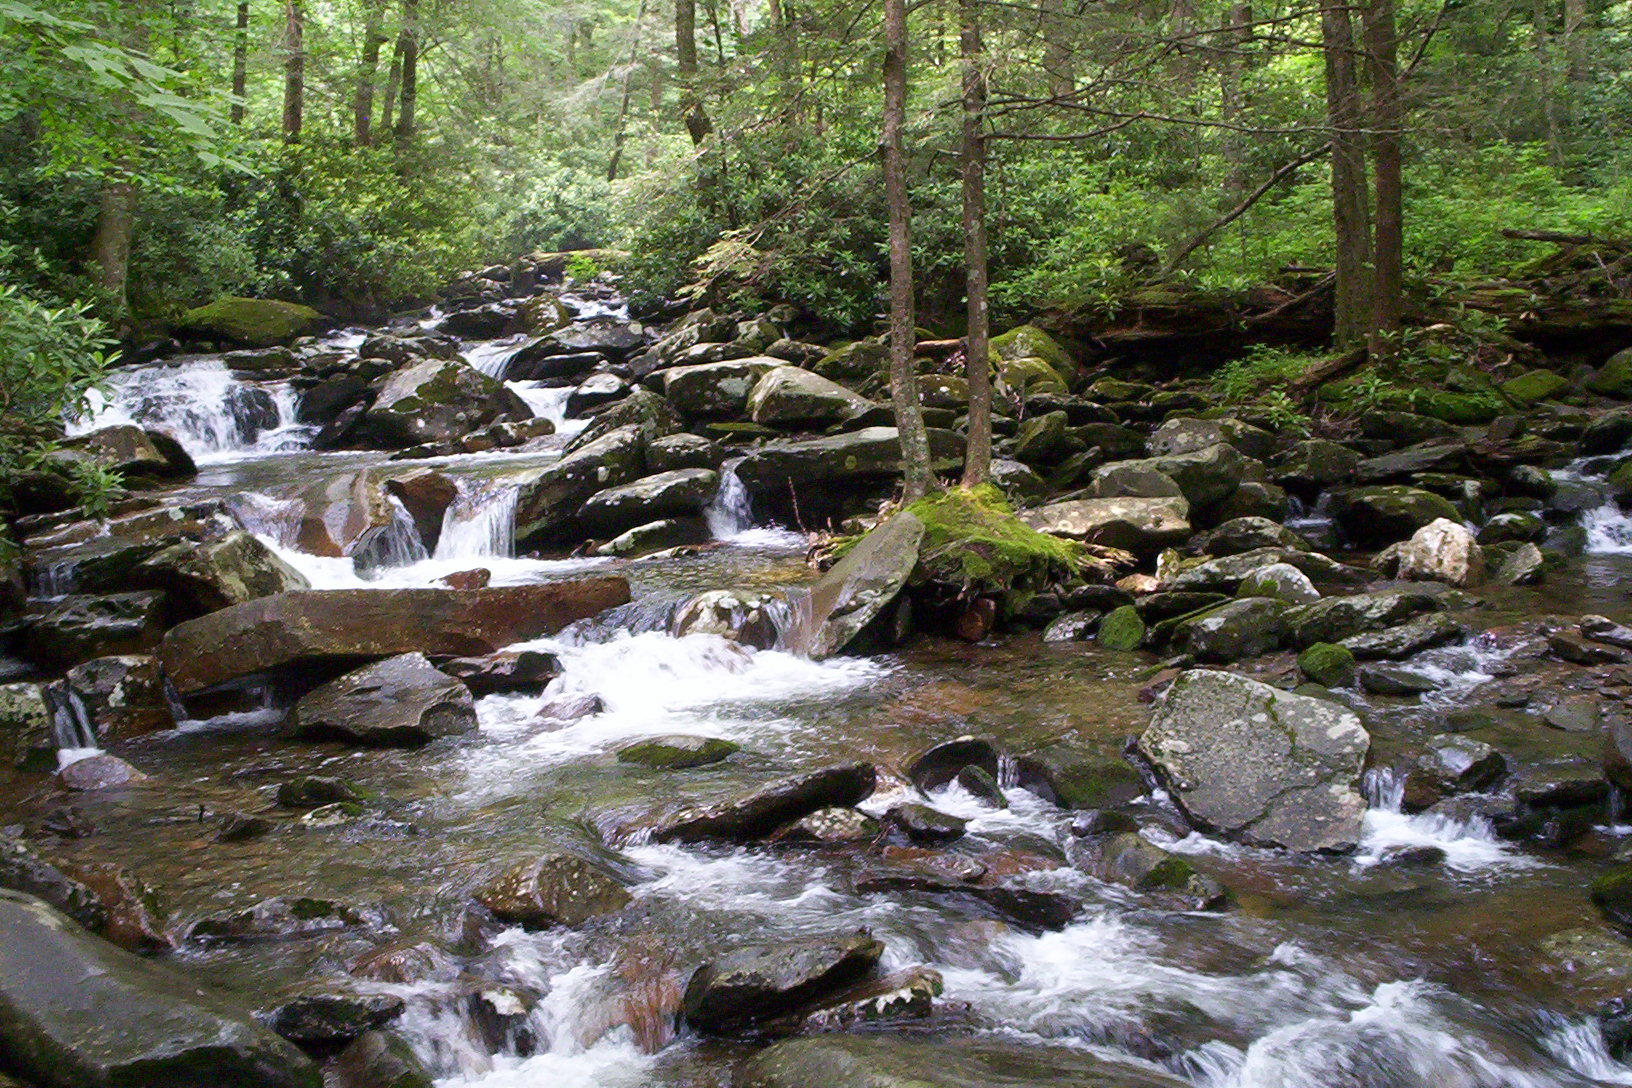 River at Chimney Tops, II by Mershell